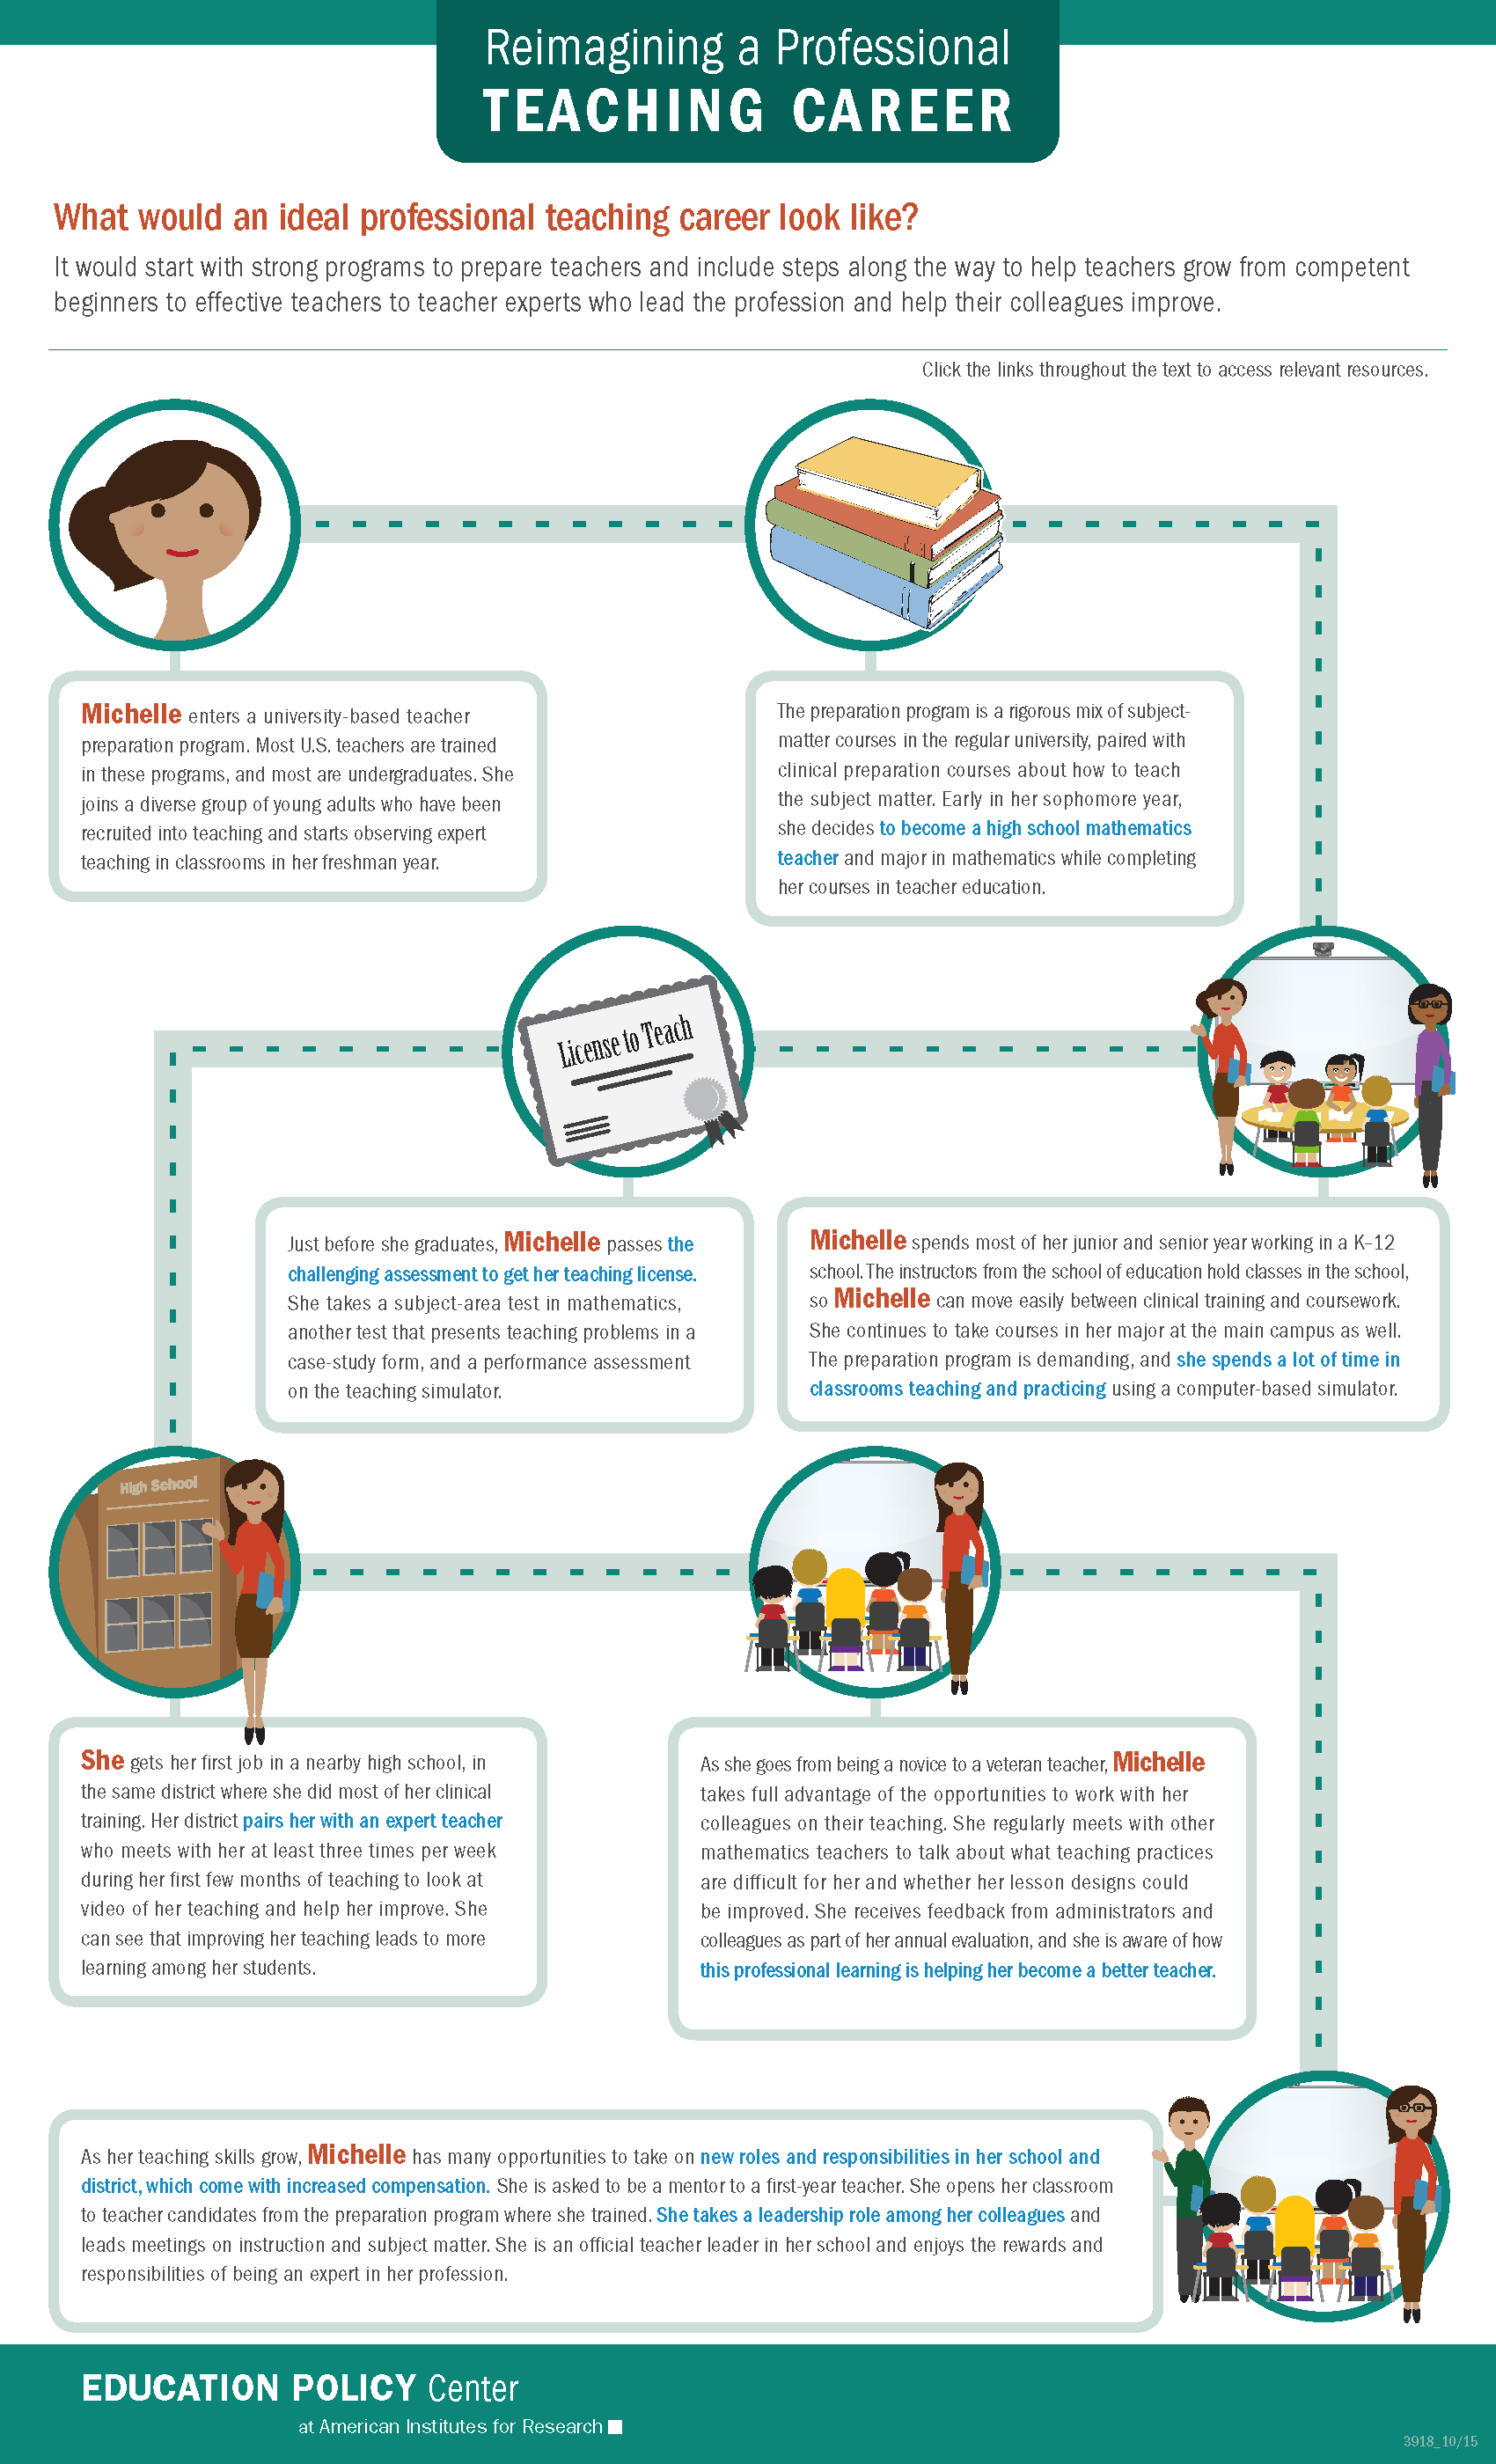 Infographic: Reimagining a Professional Teaching Career